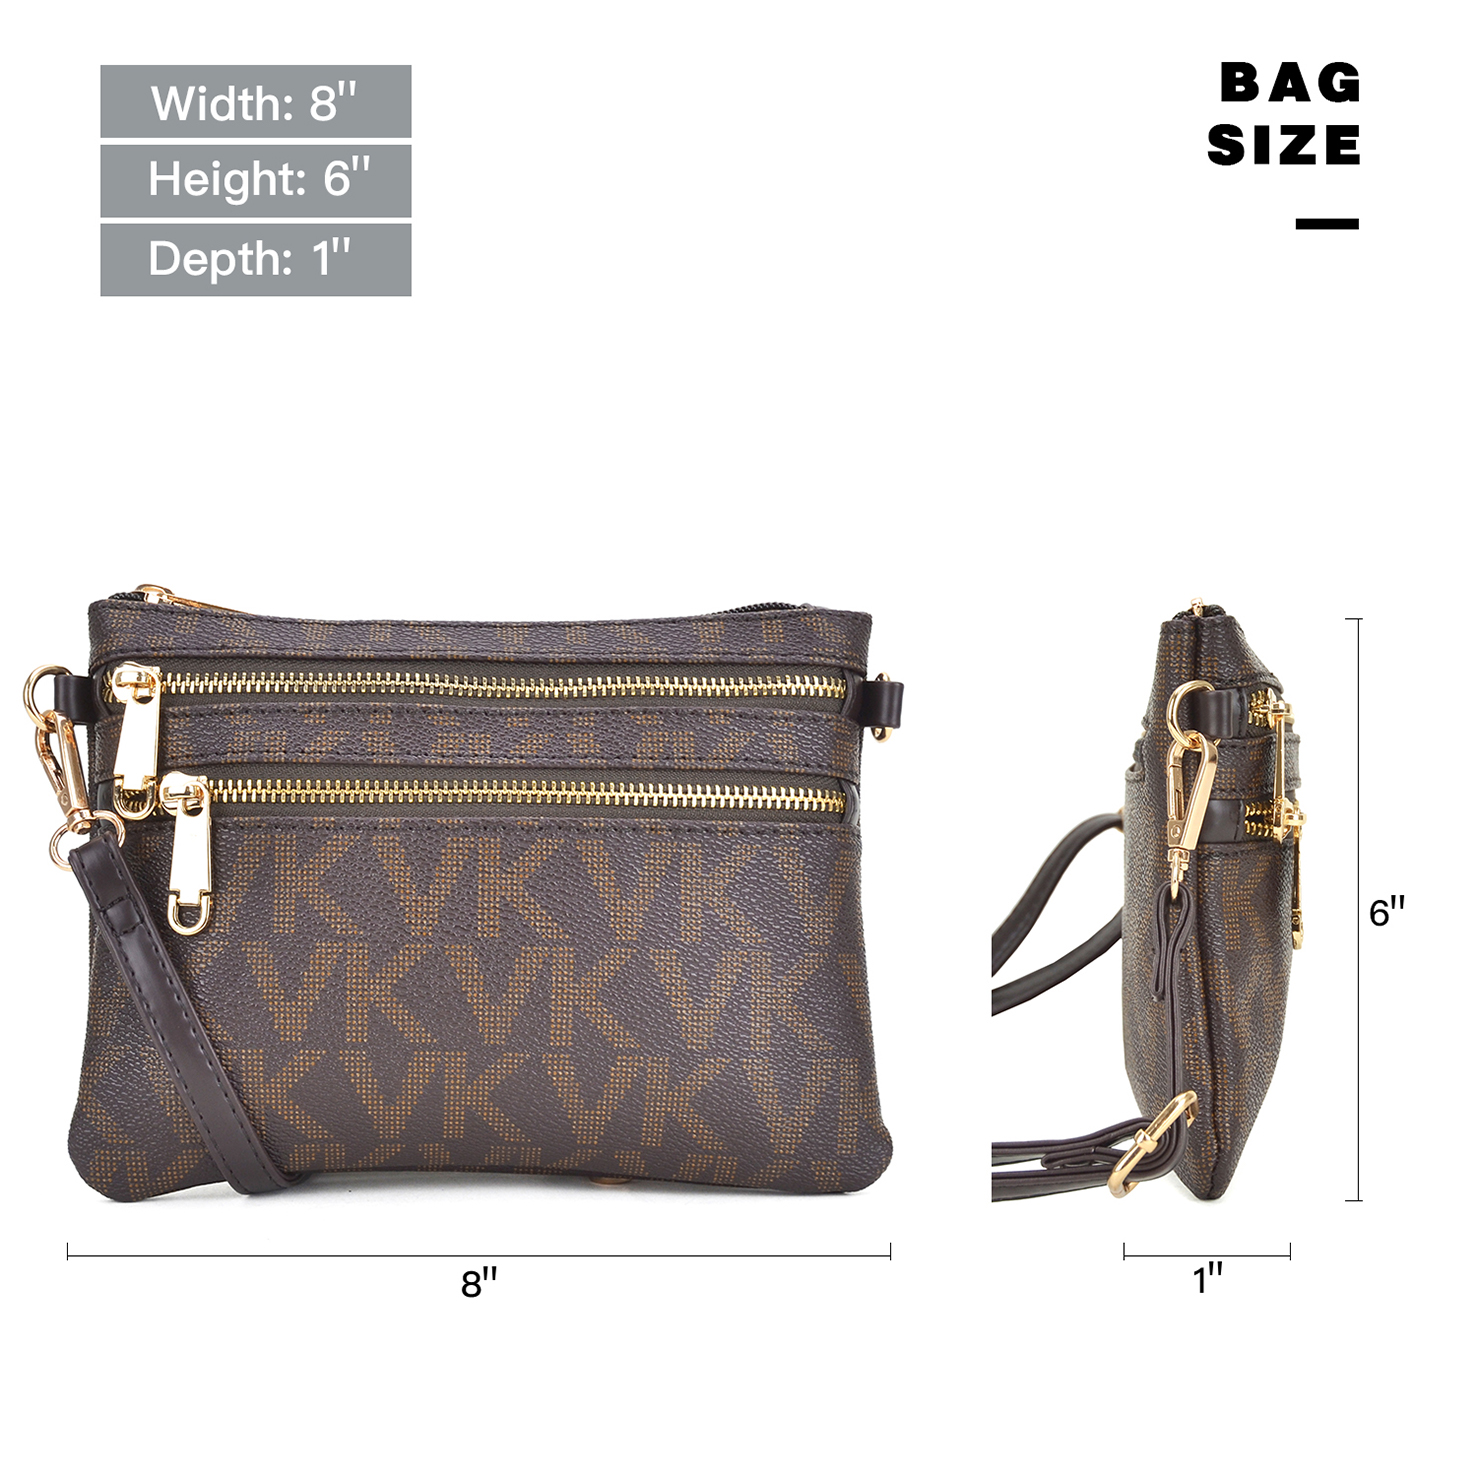 All-In-One Monogram Soft Faux Leather Crossbody/ Messenger Clutch Bag